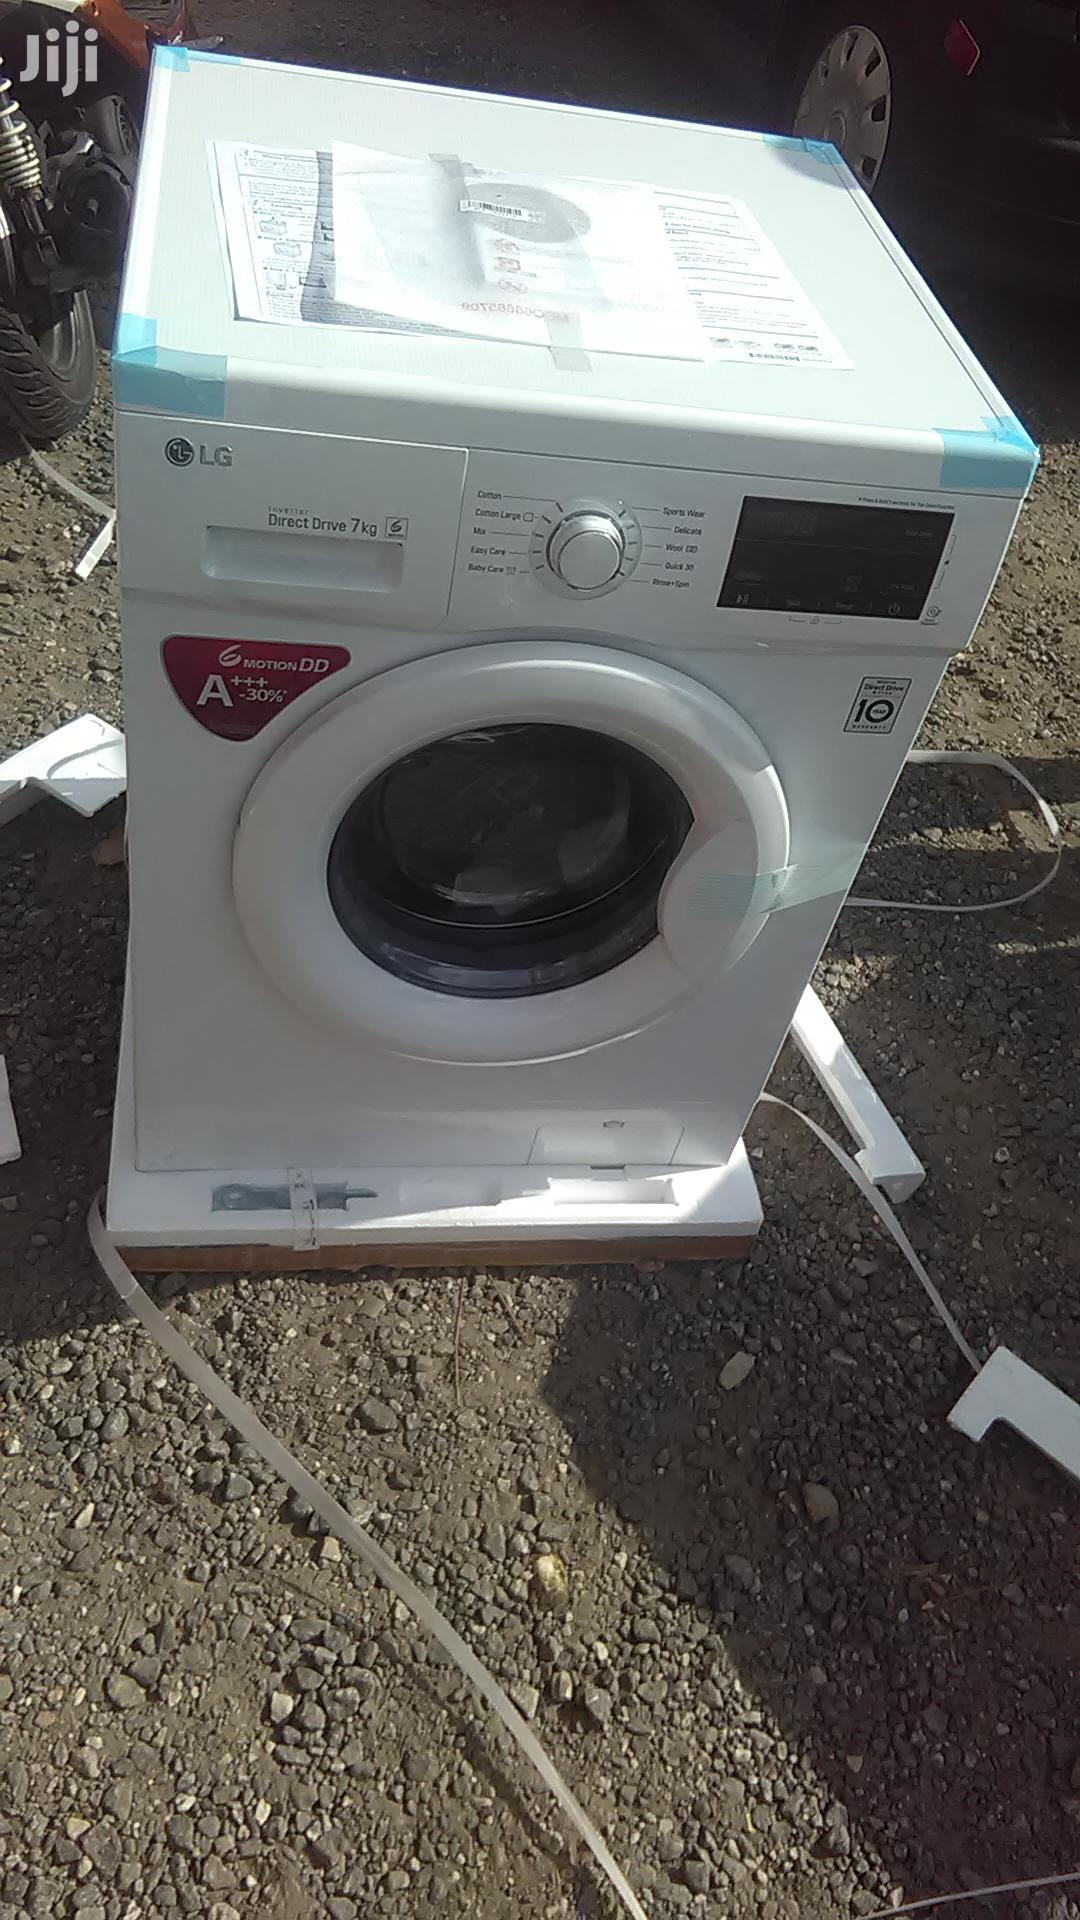 Super New LG FH2J3QDNP0 7KG Fully Automatic Washing Machine